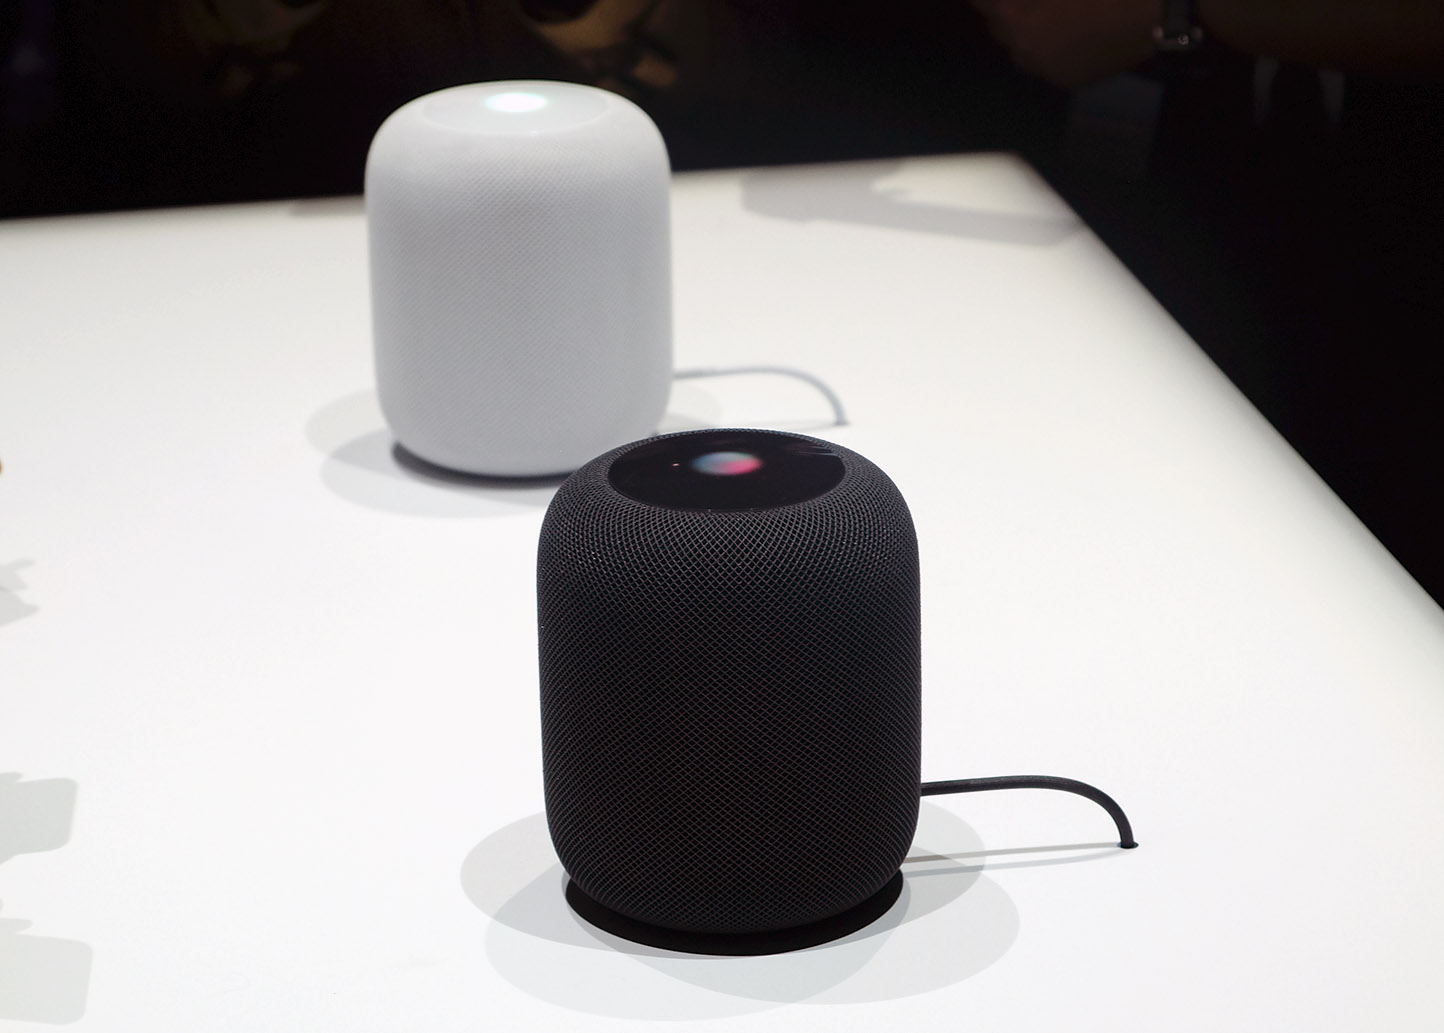 Like most Apple devices, the new HomePod speakers look great.